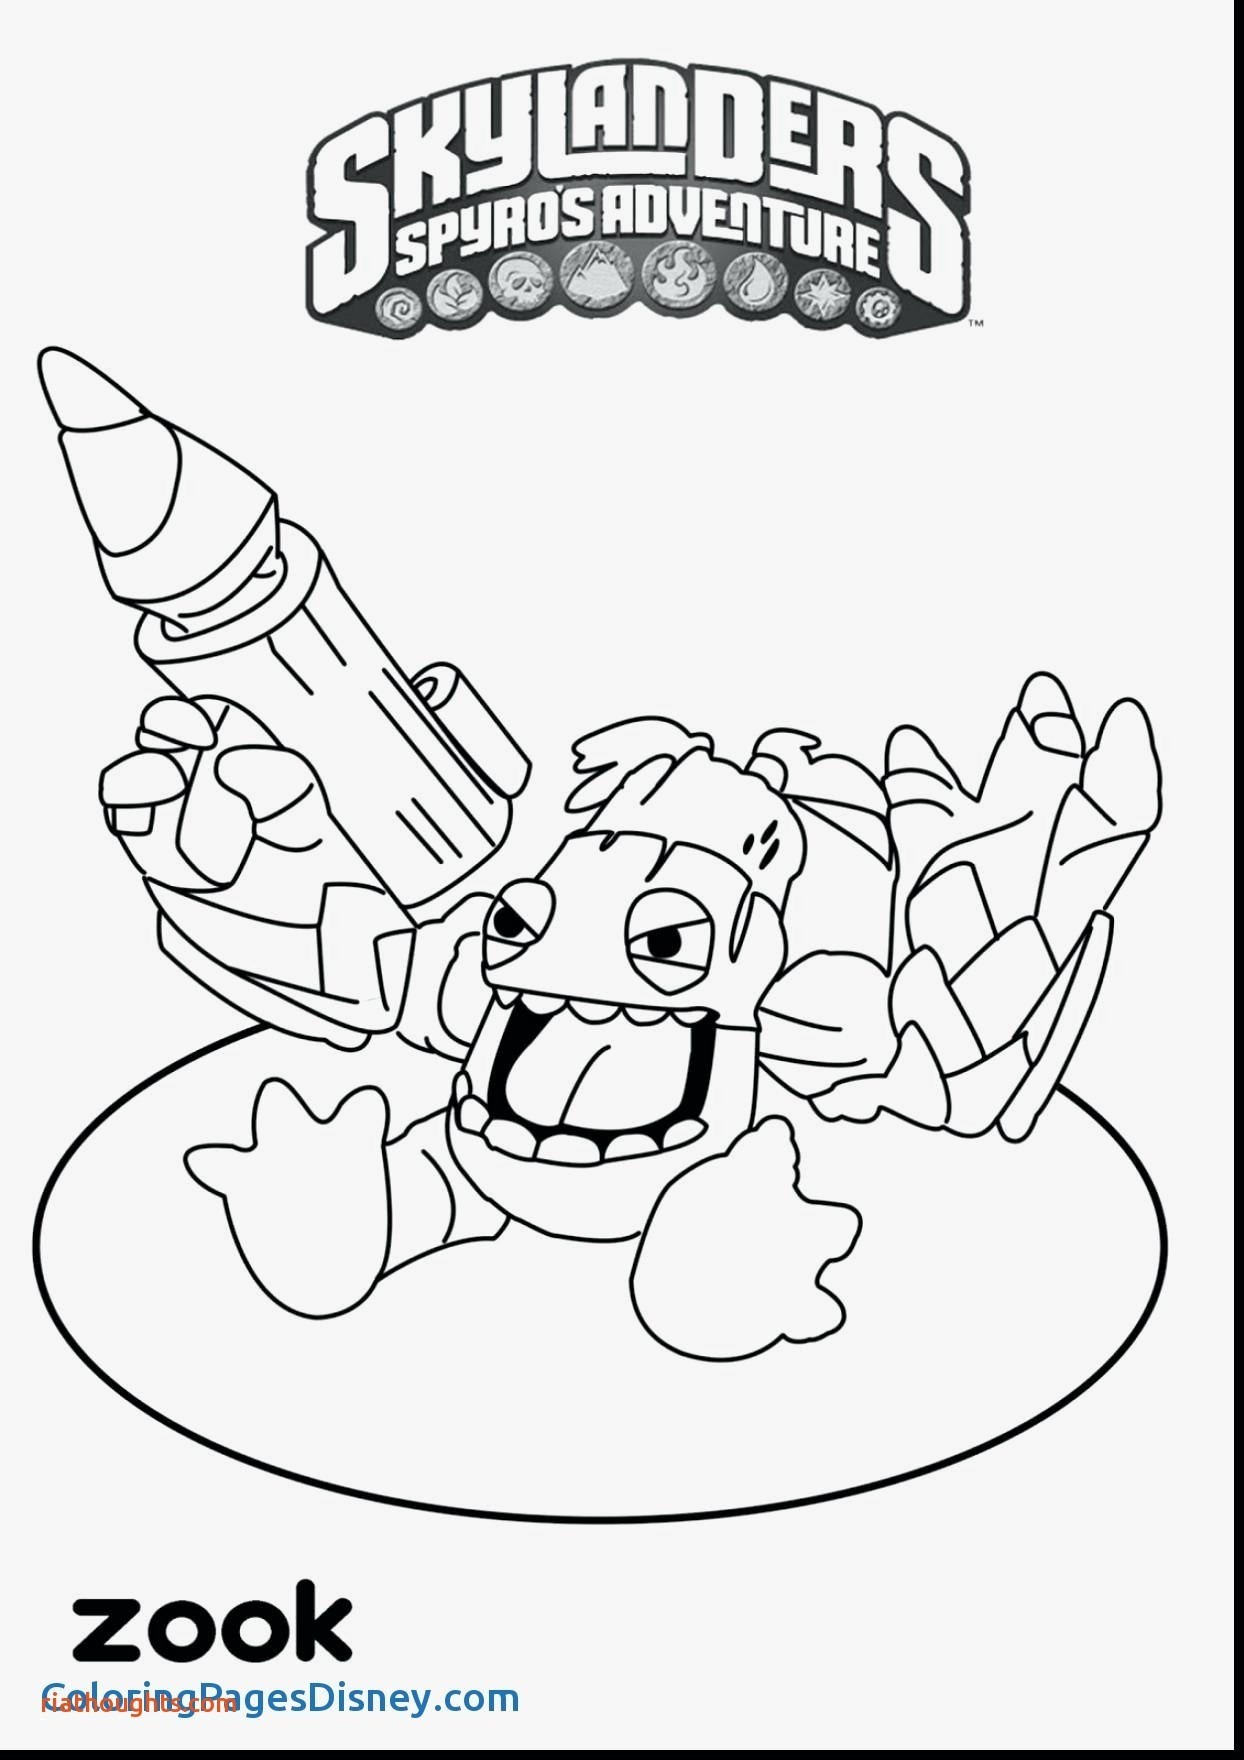 Superman Coloring Pages  to Print 12e - Save it to your computer